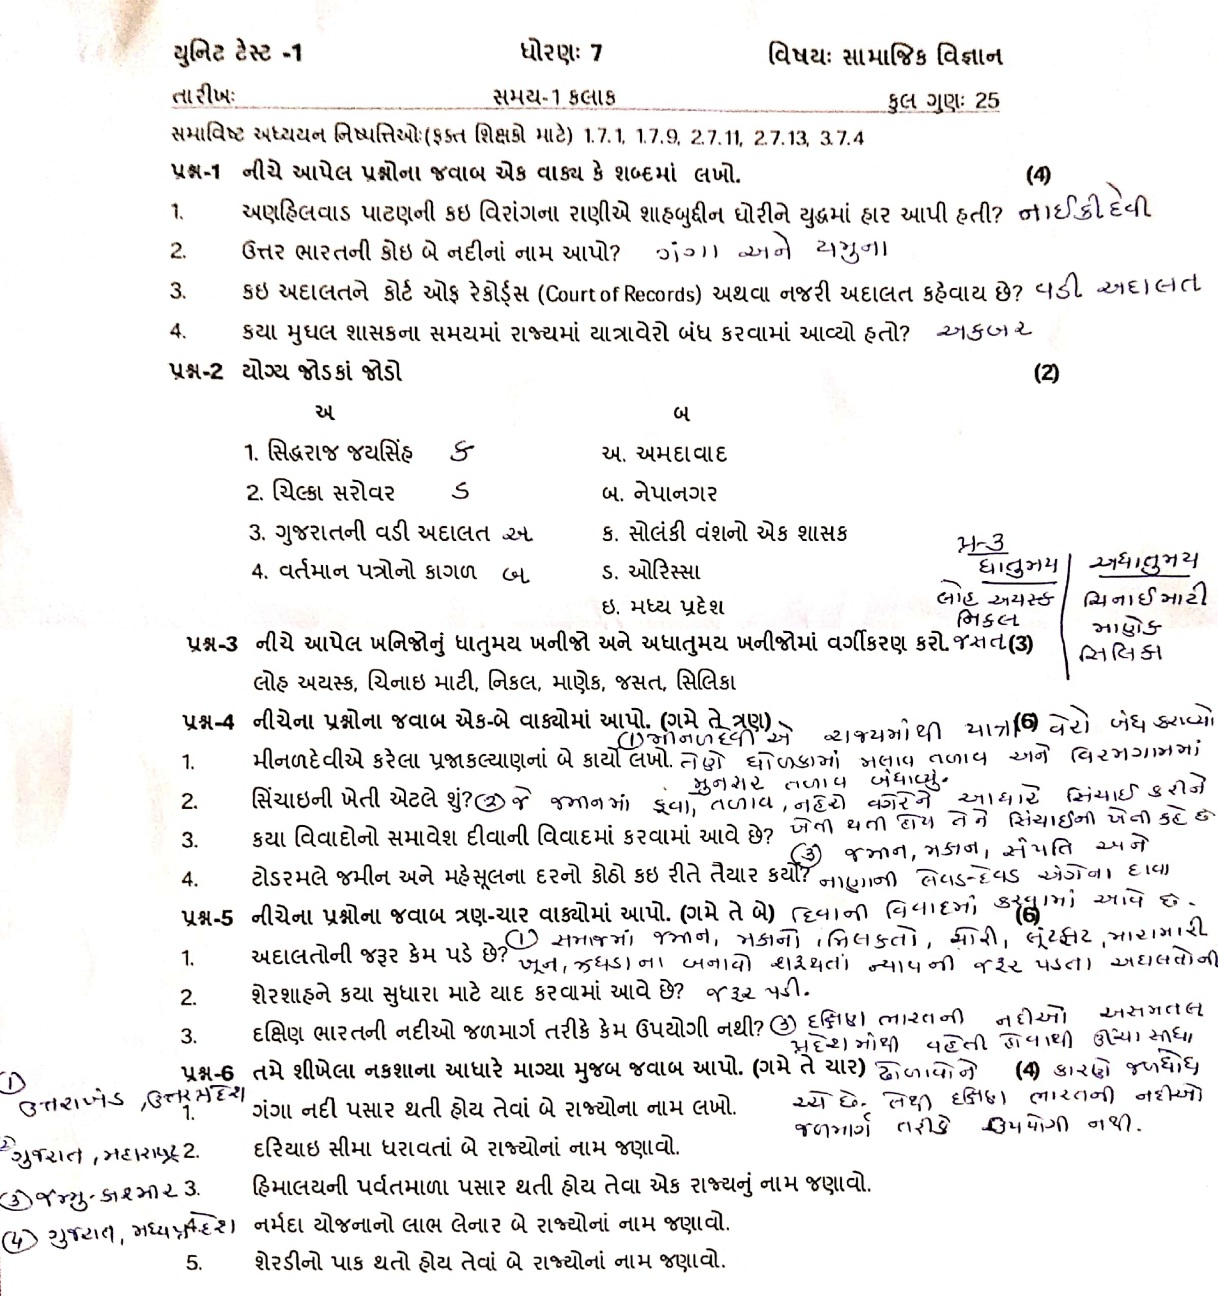 NILESH JADAV: STD- 6 TO 8 SOCIAL SCIENCE SUBJECT UNIT TEST